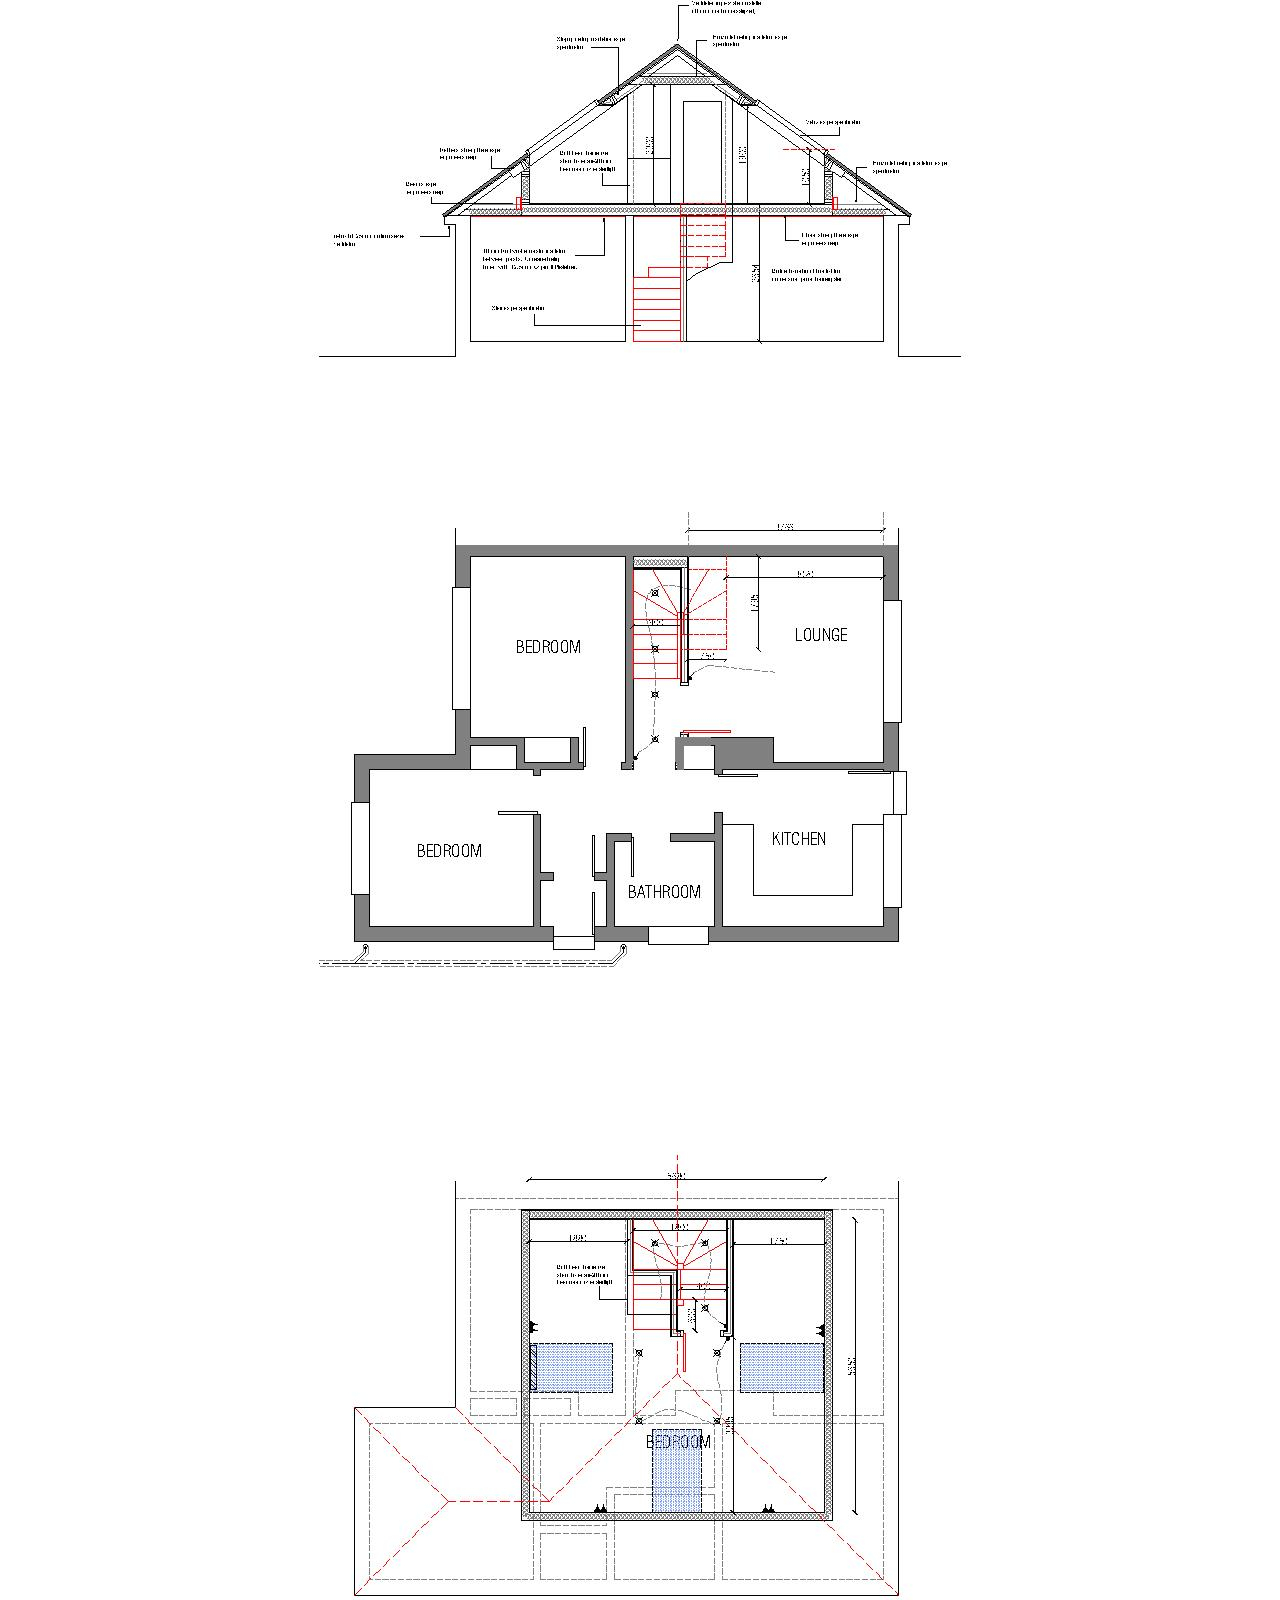 Dormer Conversion Plans on awning plans, rafter plans, porch plans, cupola plans,